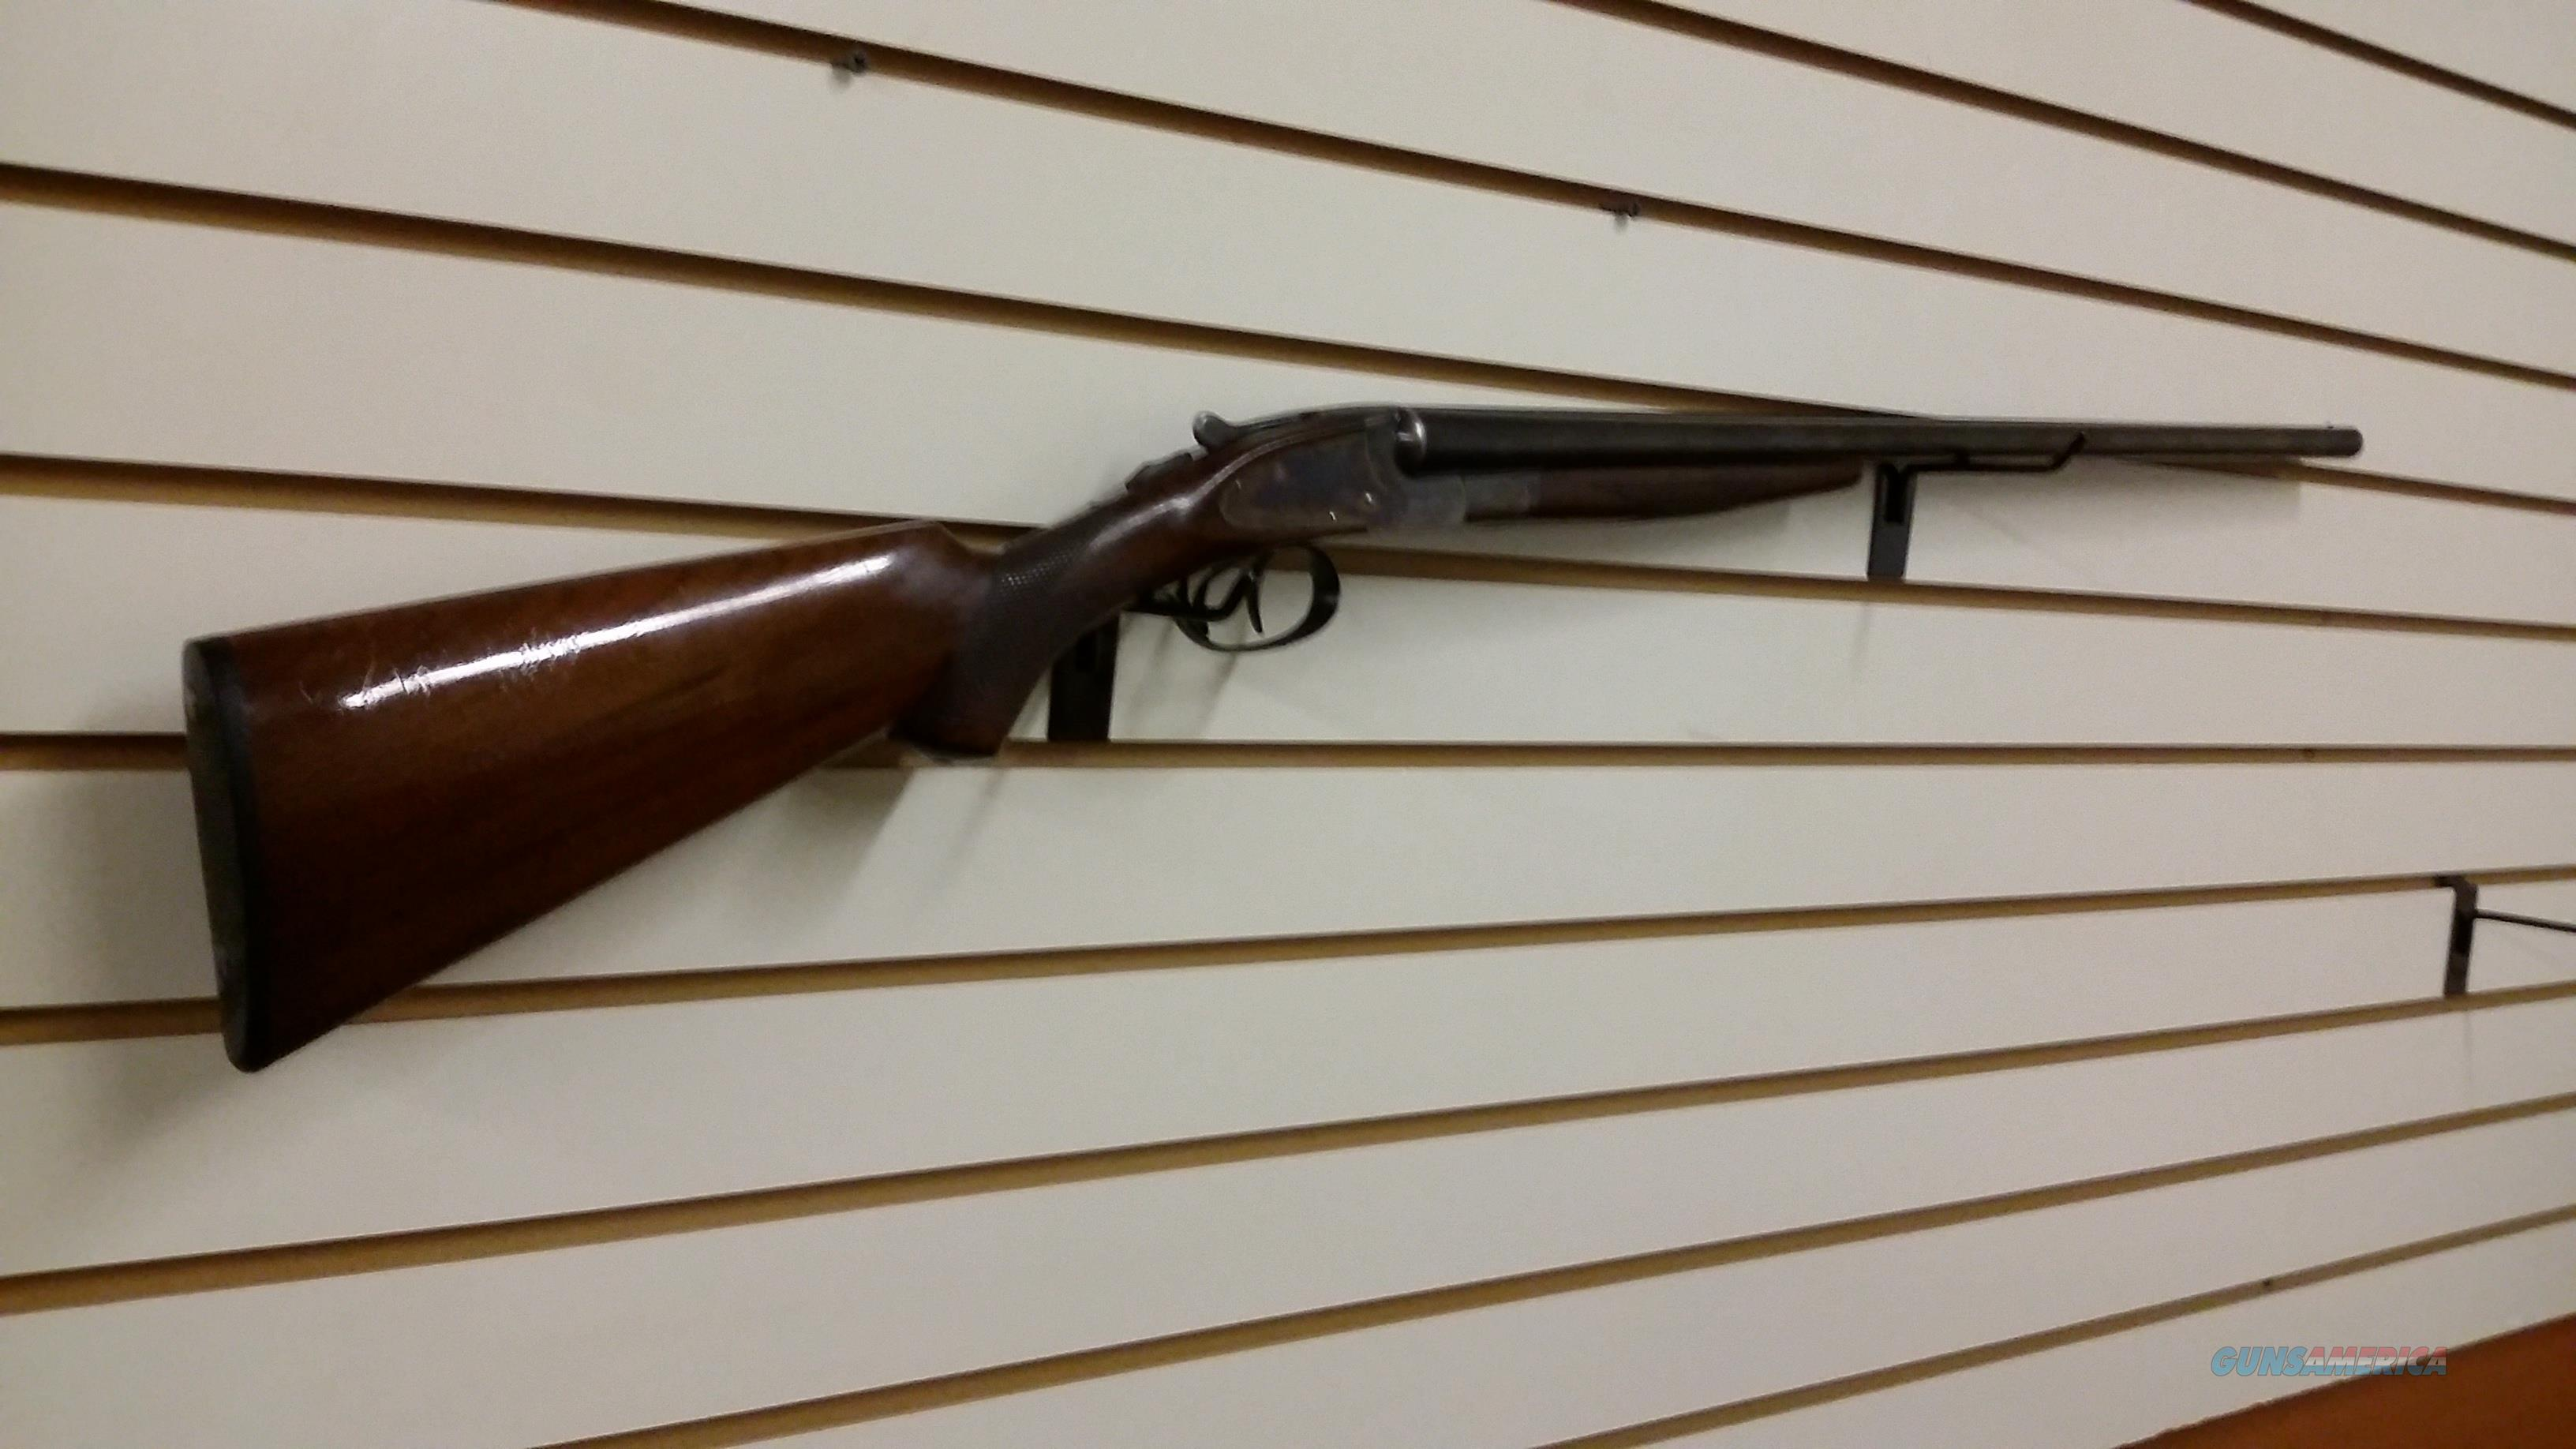 L.C. Smith 20 Gauge  Guns > Shotguns > L.C. Smith Shotguns